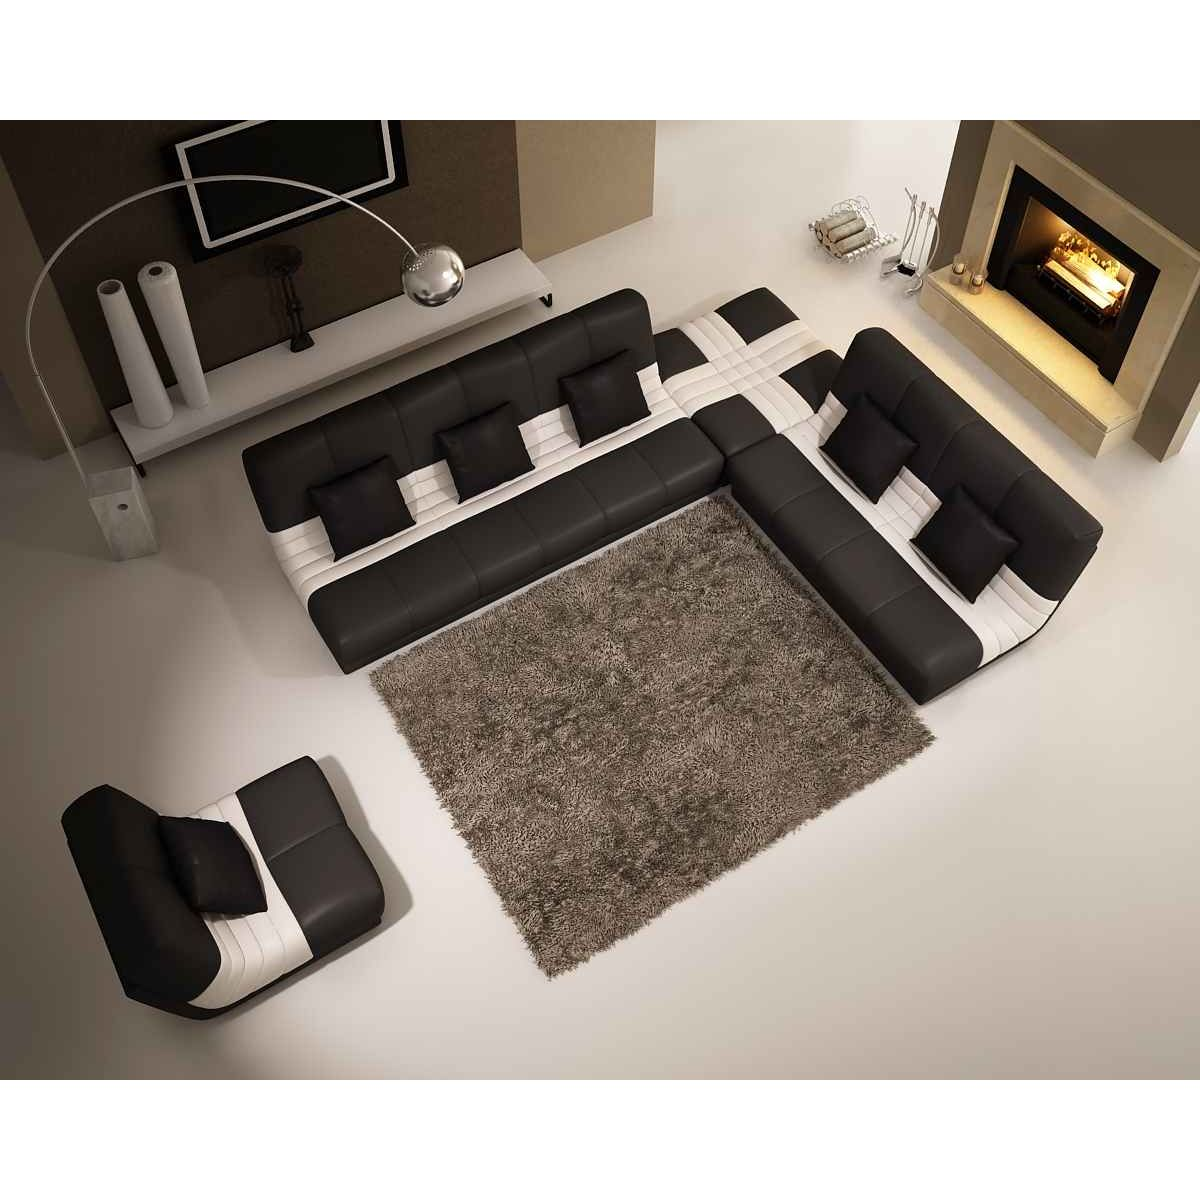 canape modulable en cuir maison design. Black Bedroom Furniture Sets. Home Design Ideas